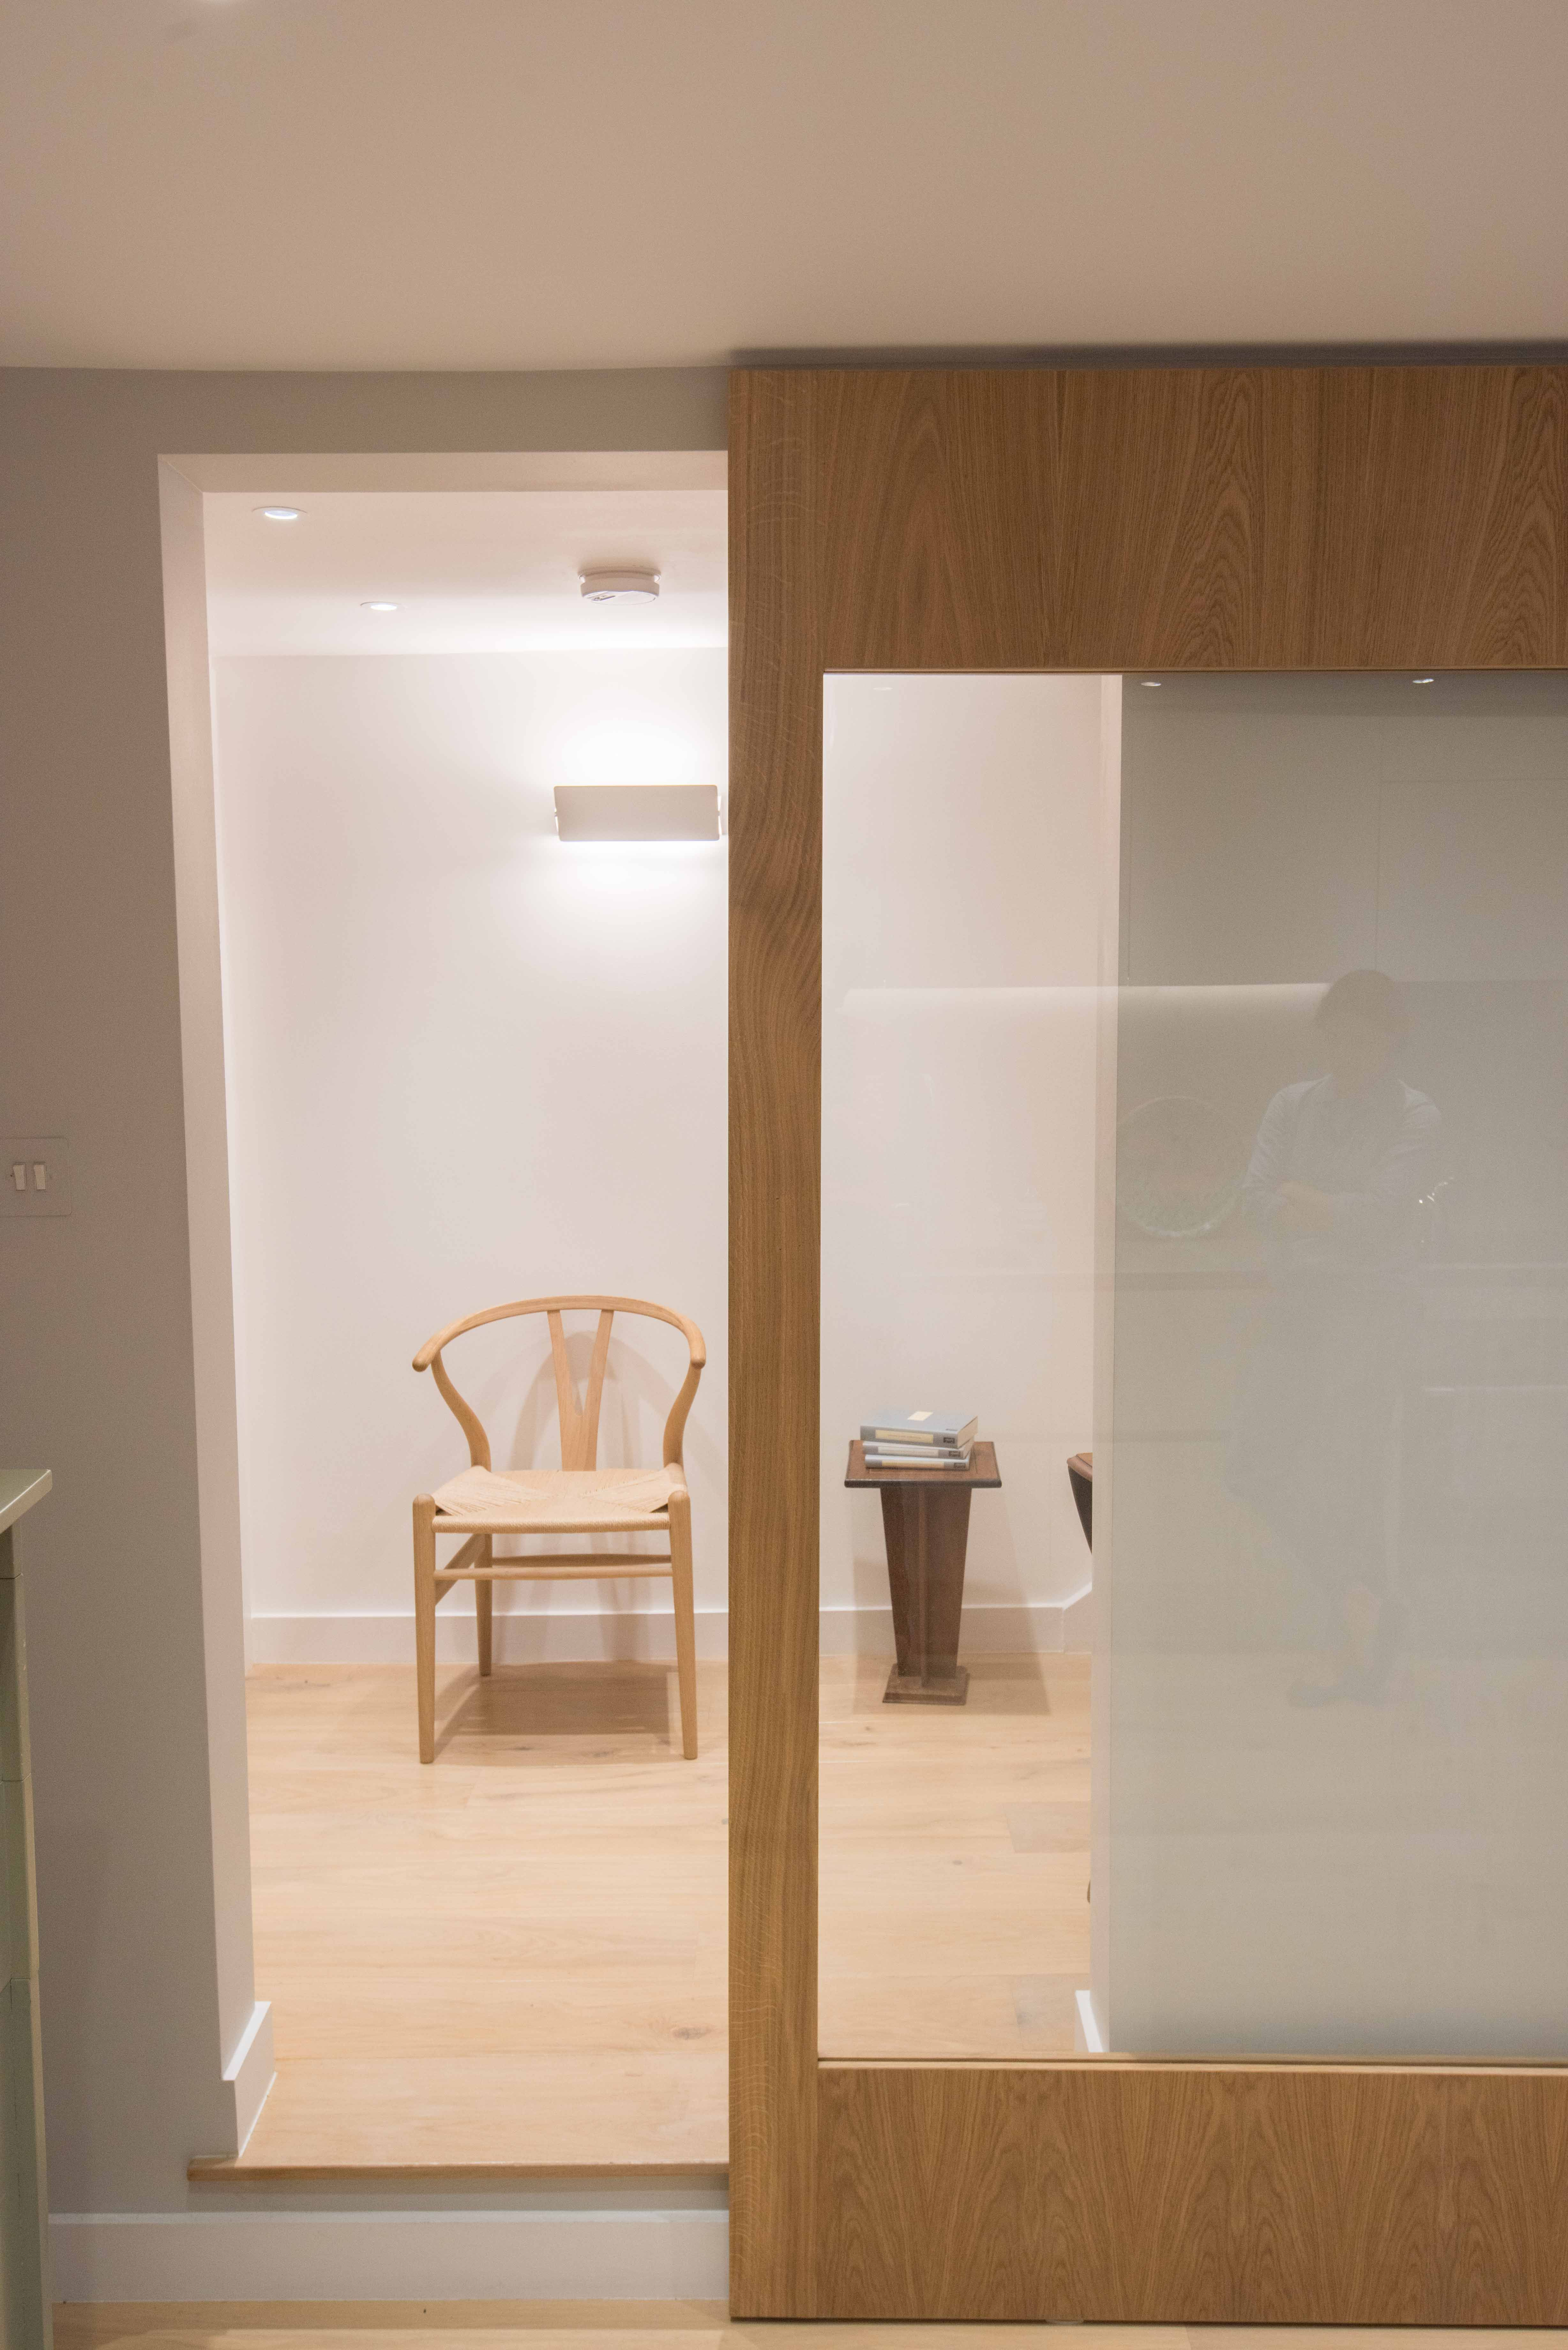 Sliding Door A Bespoke Wooden Frame With Large Glass Panel Conceals